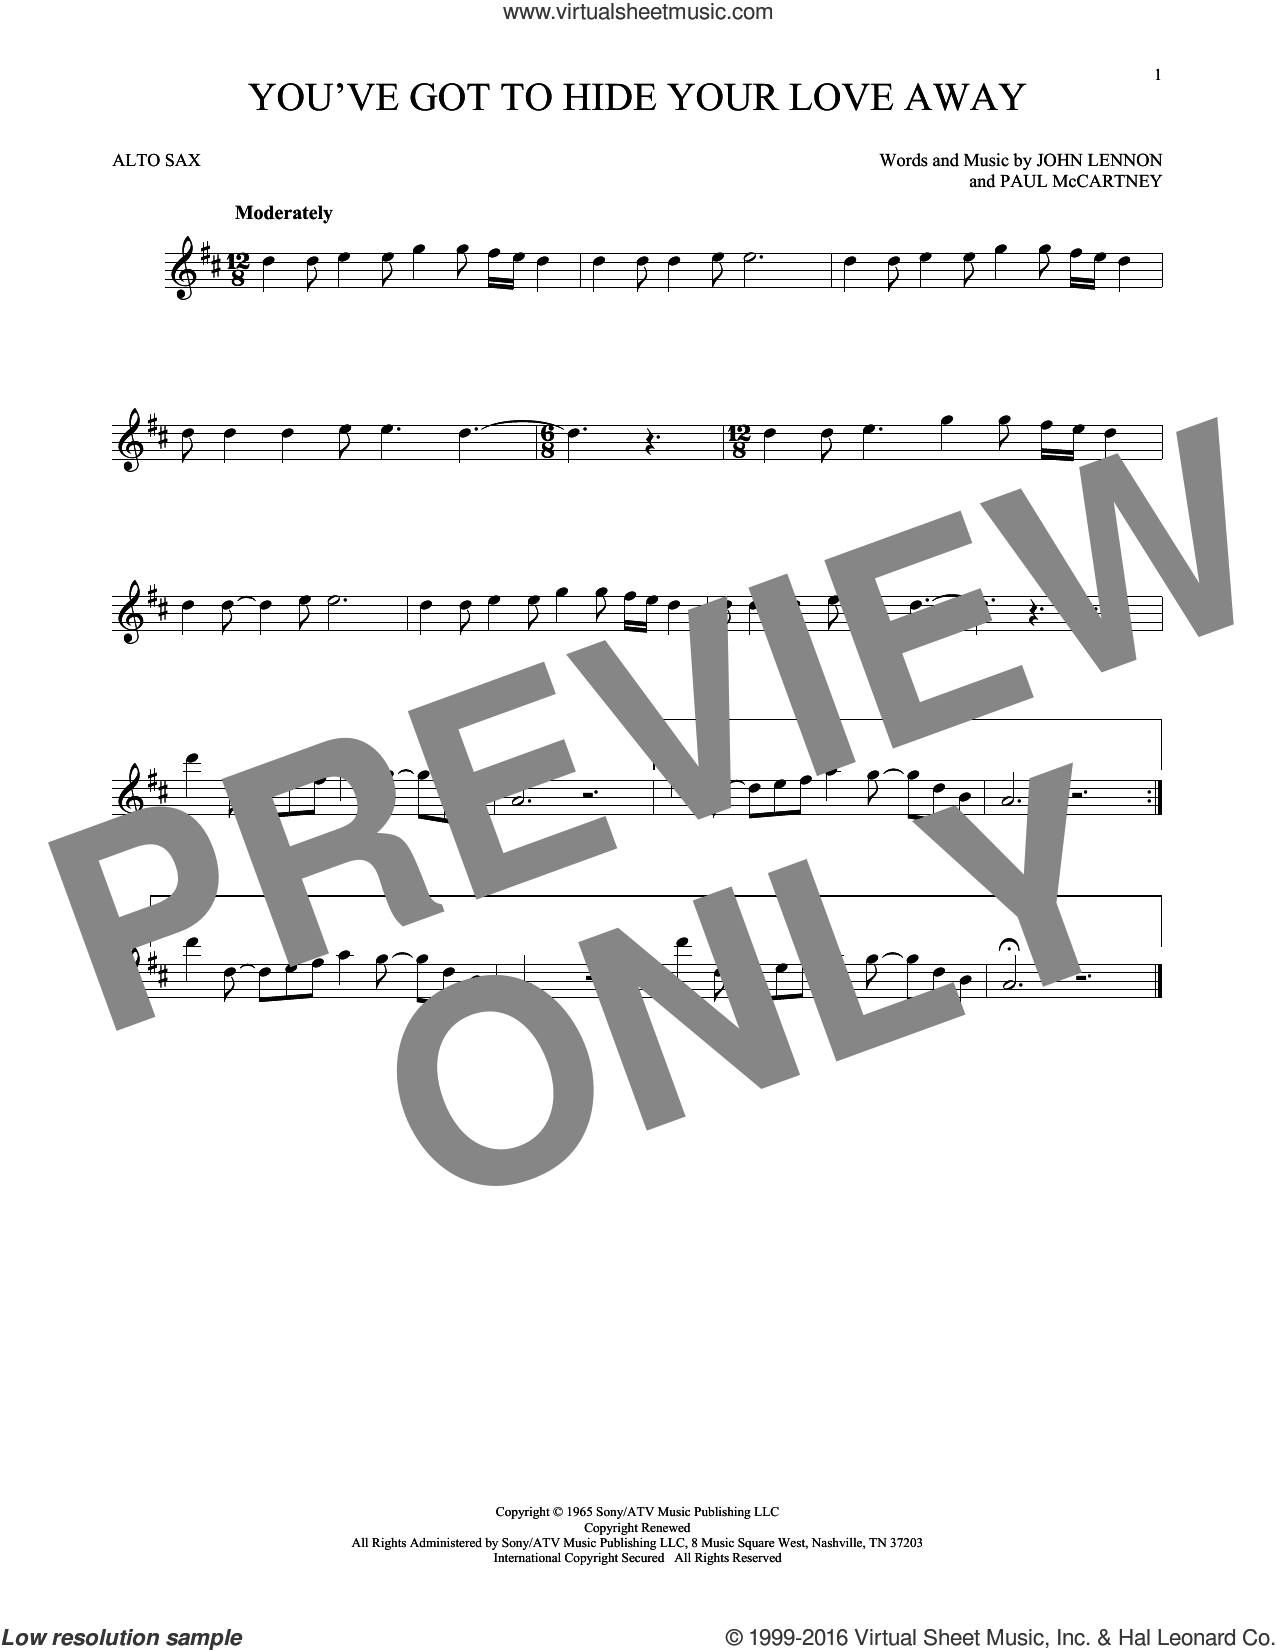 You've Got To Hide Your Love Away sheet music for alto saxophone solo by Paul McCartney, The Beatles and John Lennon. Score Image Preview.